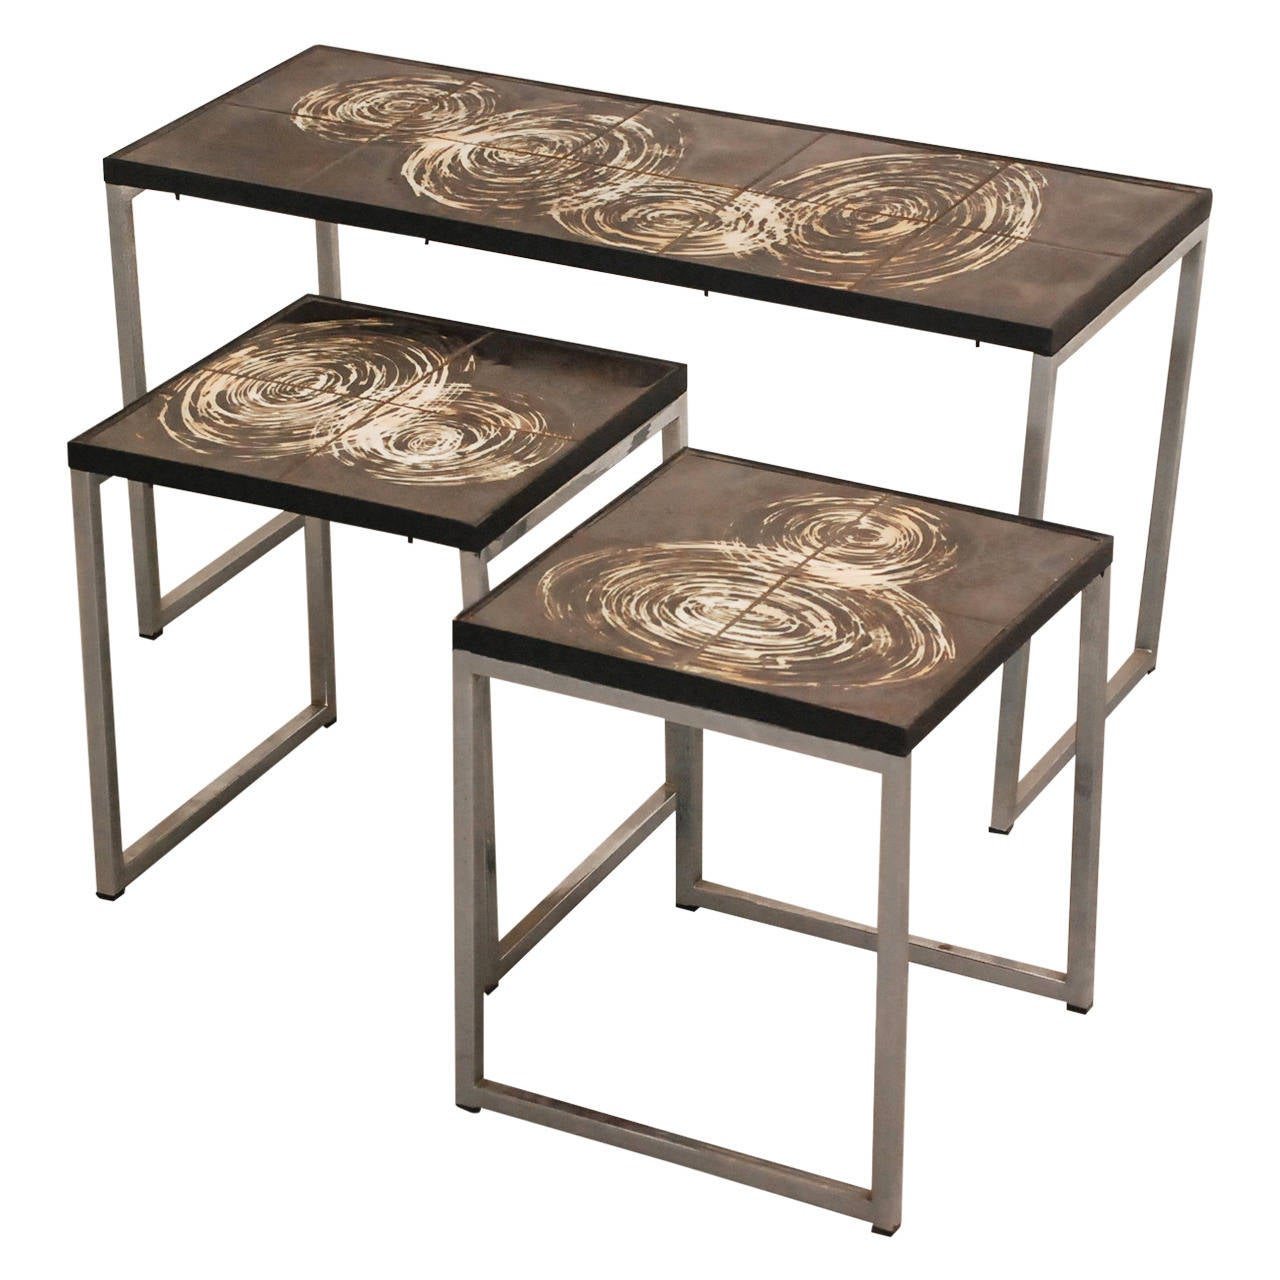 Belarti coffee table with two side tables with hand painted tiles at 1stdibs Side and coffee tables